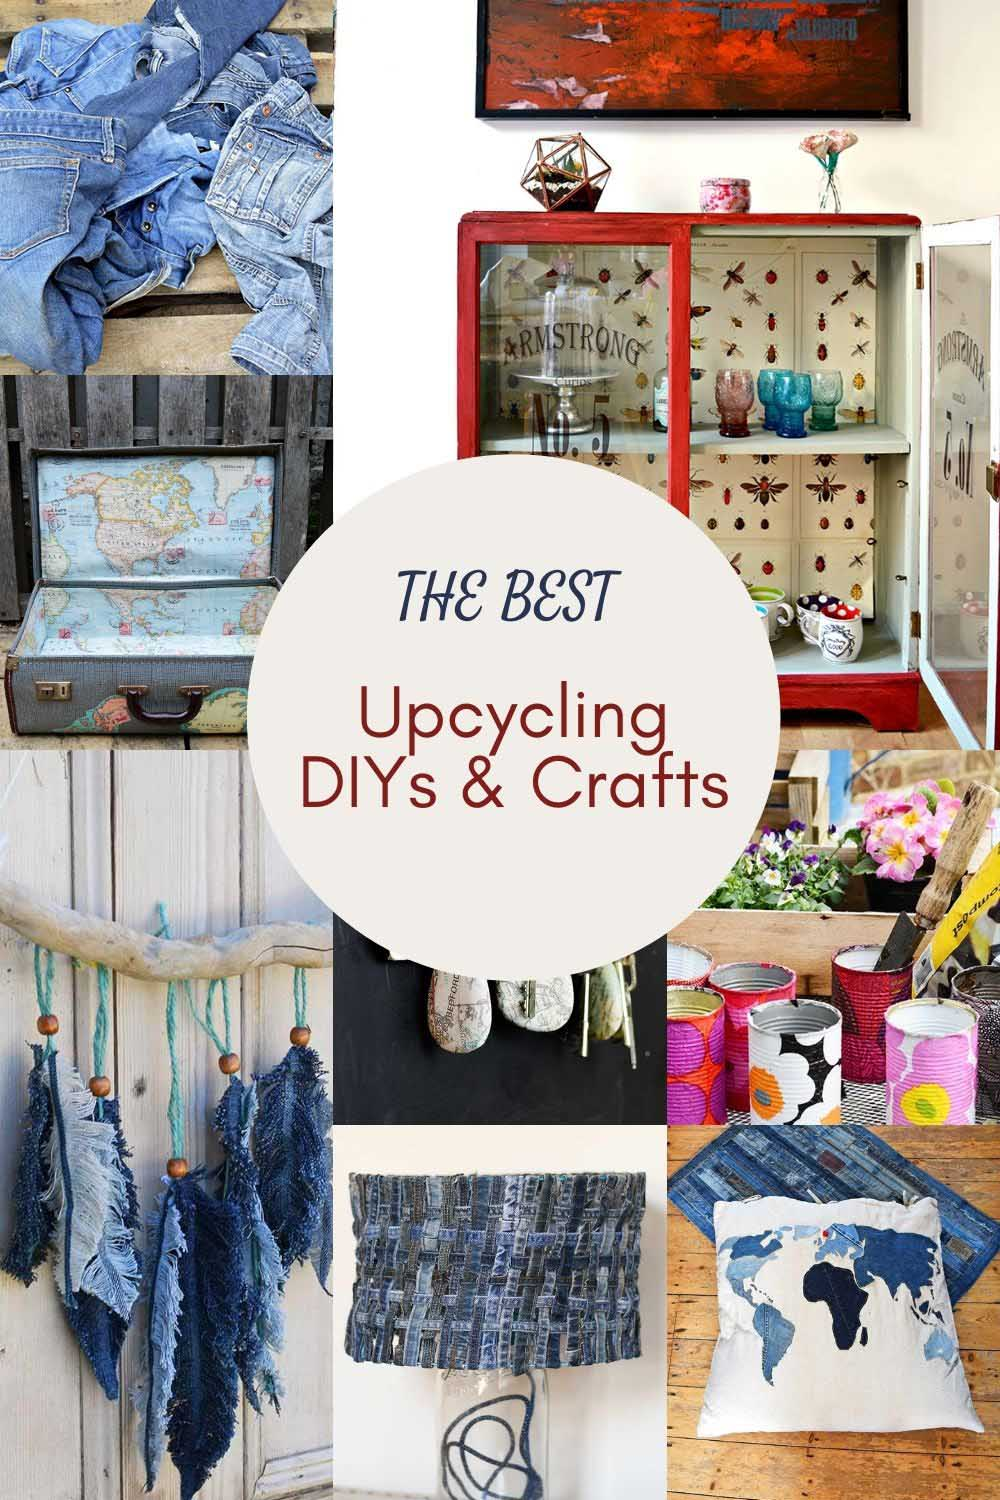 Upcycling DIY and crafts for the home